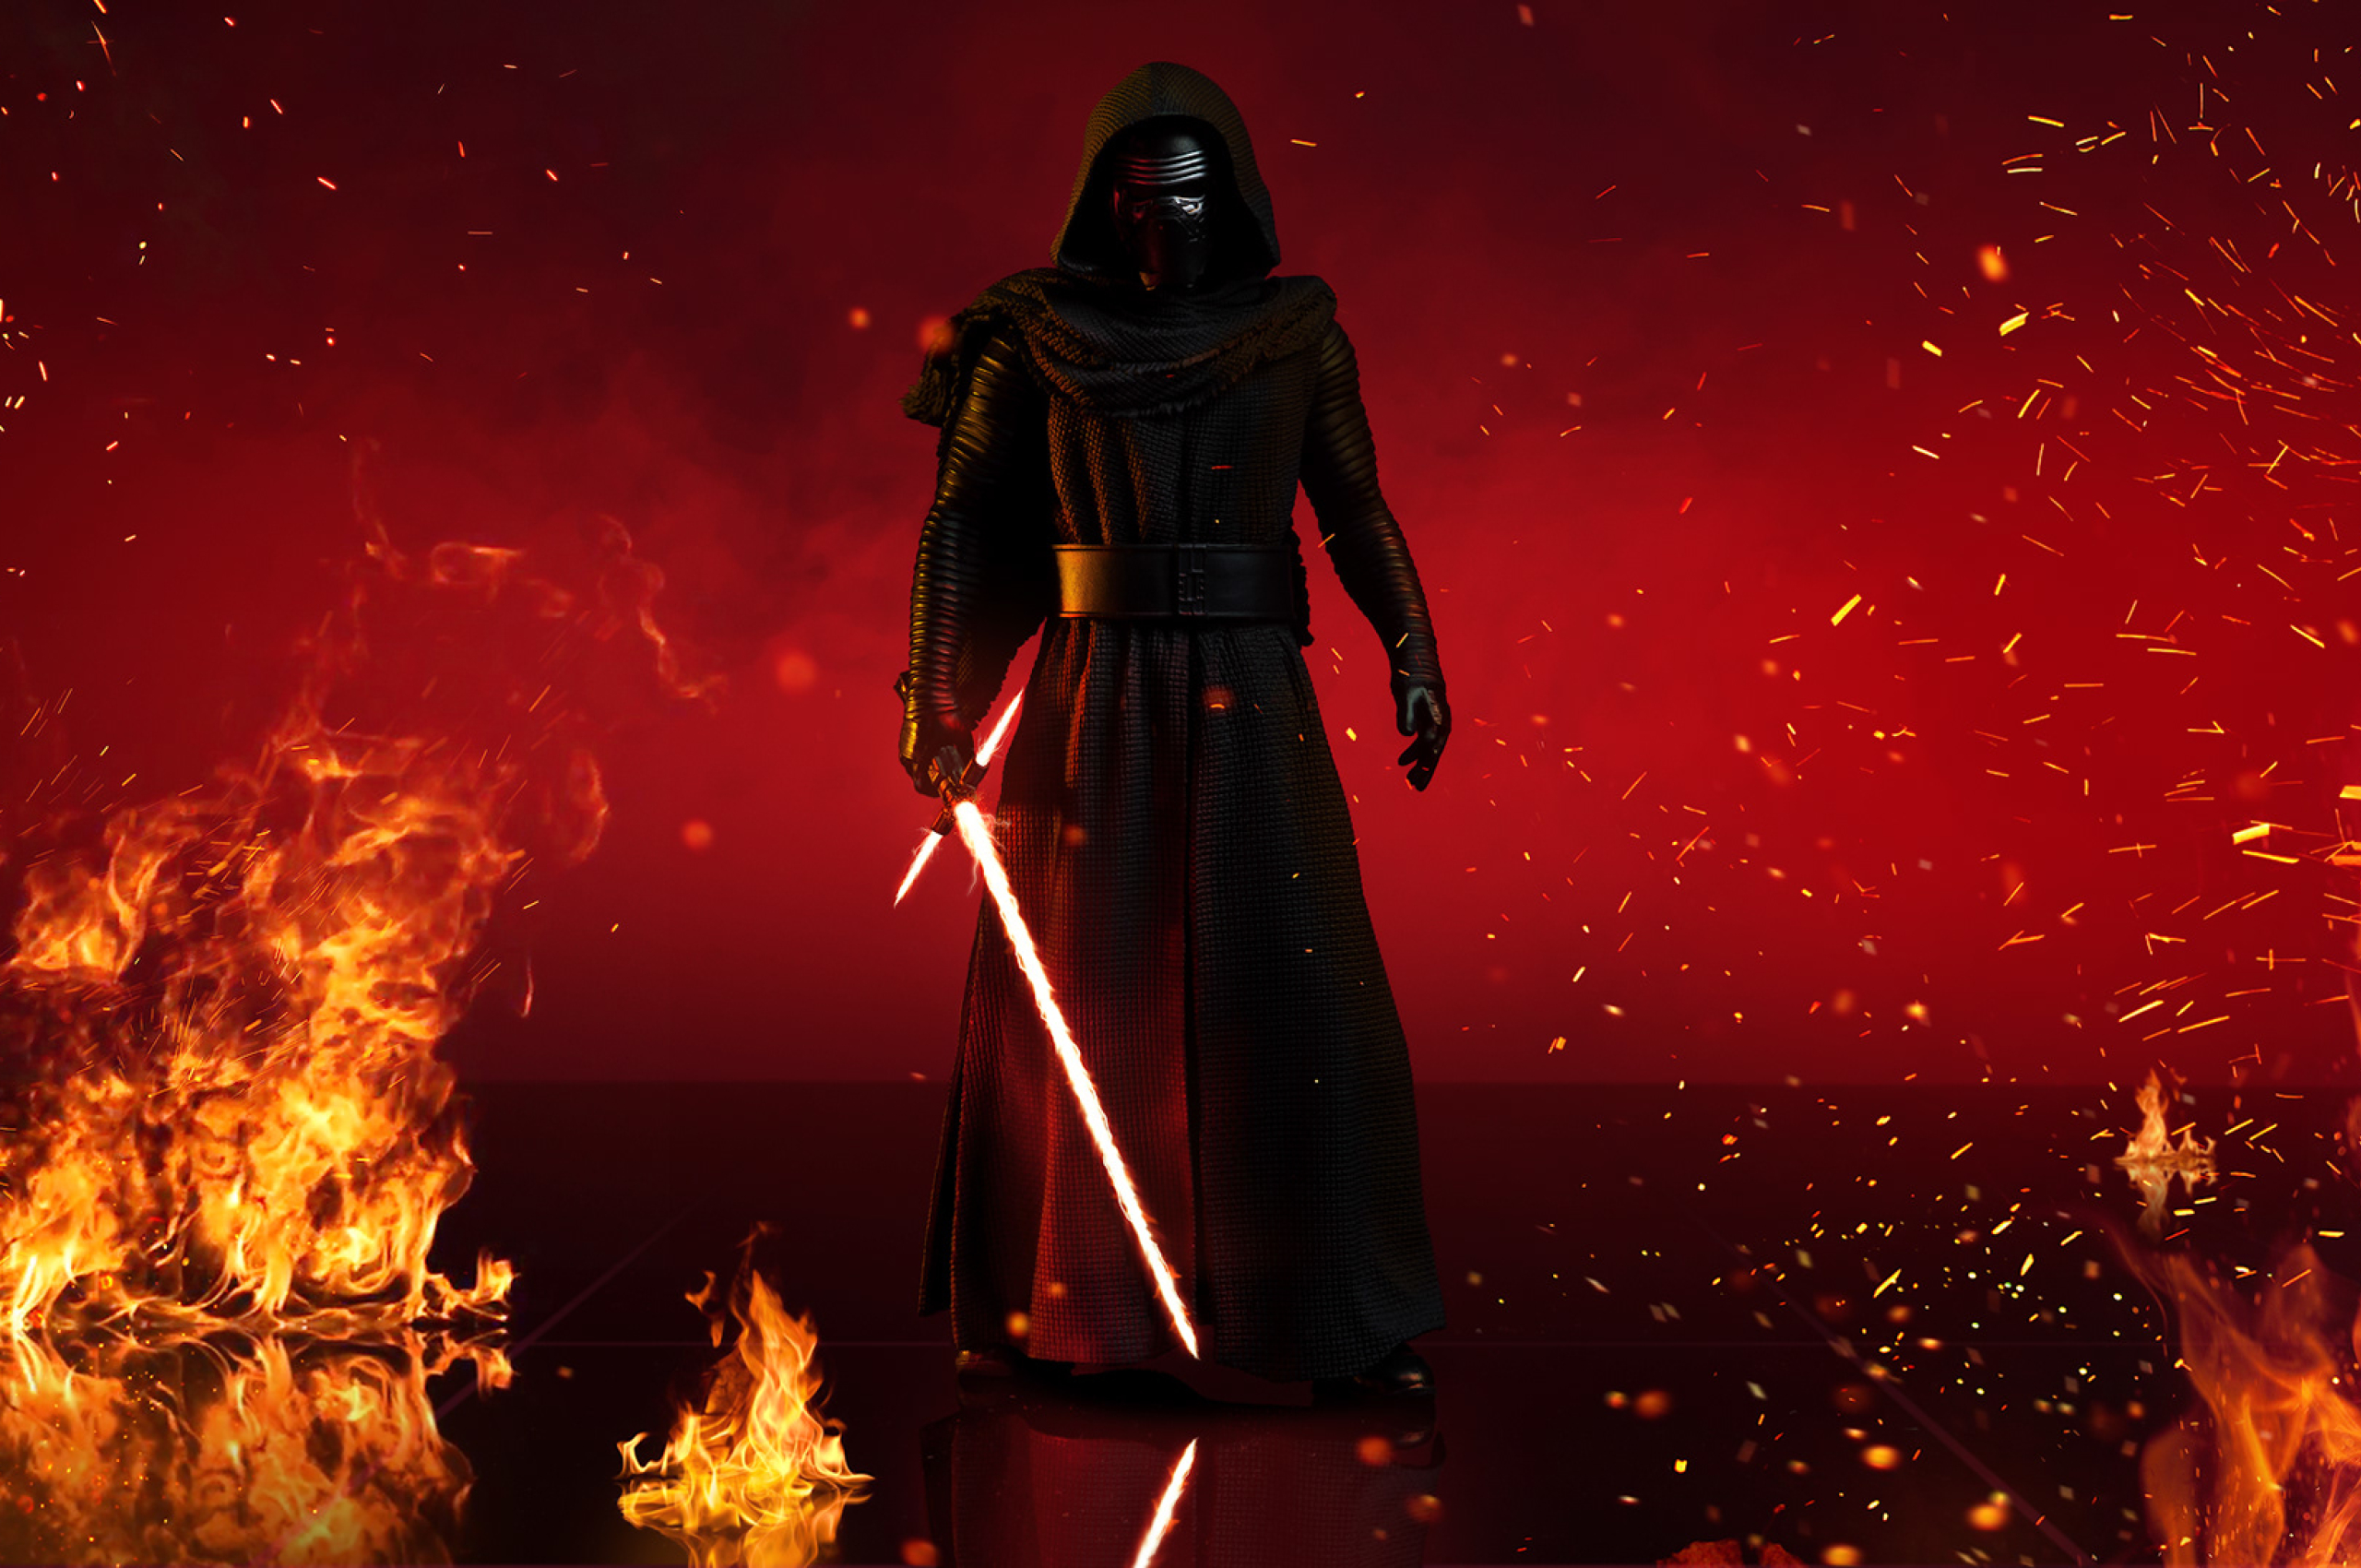 kylo ren with lightsaber in star